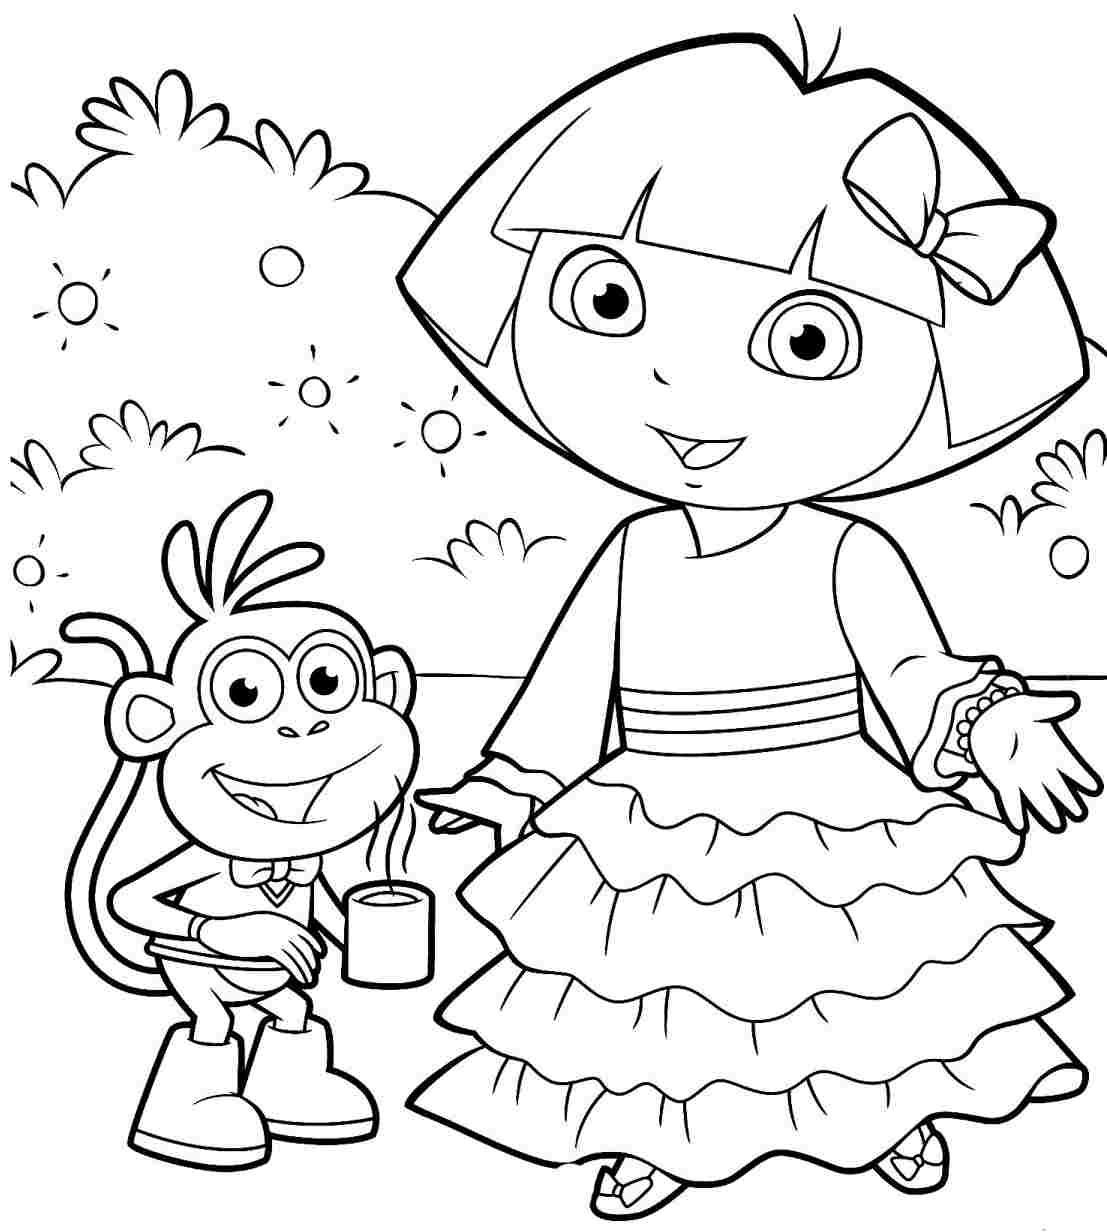 dora pictures to color and print print out dora the explorer marquez coloring pages free color and pictures dora print to